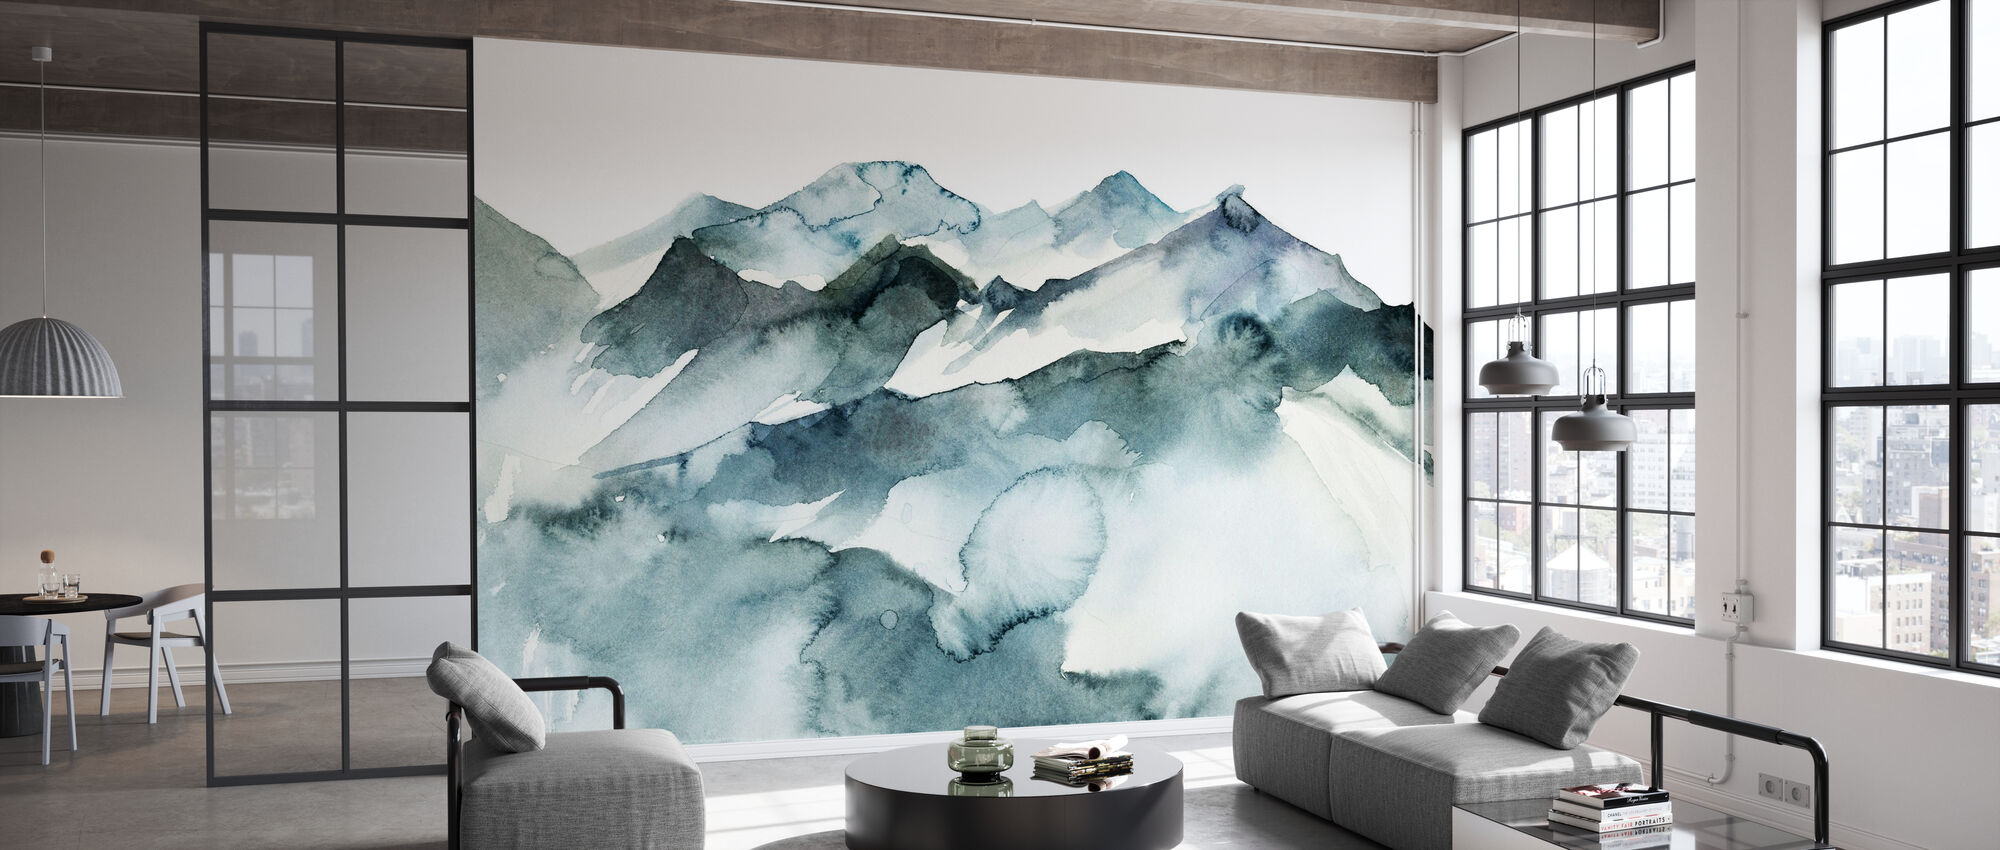 Watercolor Mountains - Wallpaper - Office